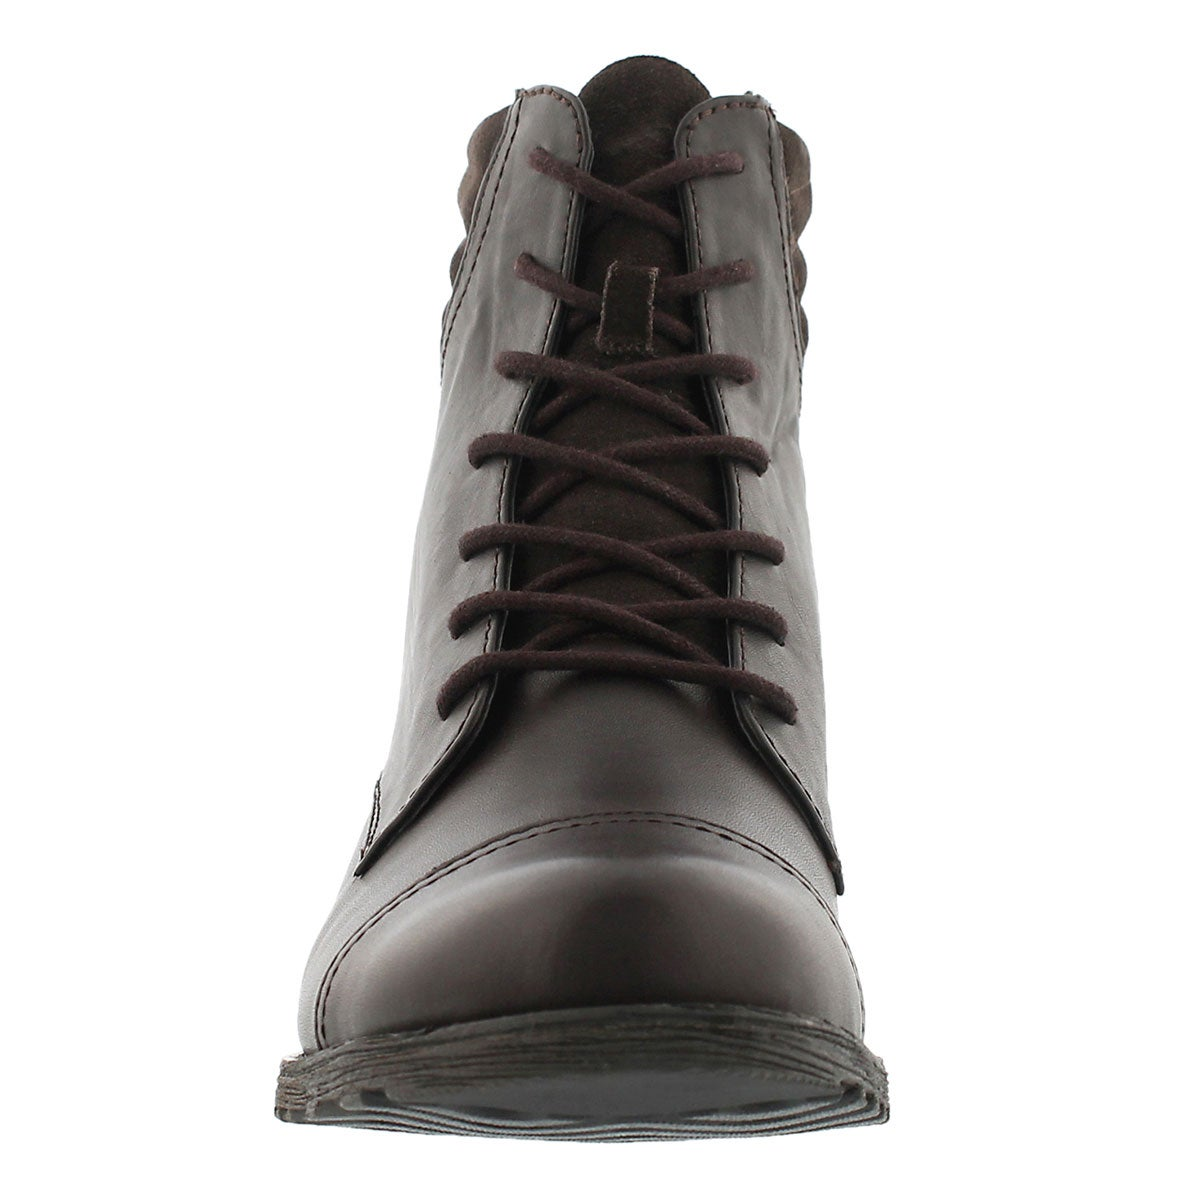 Lds Sunny Madison brown wtpf ankle boot